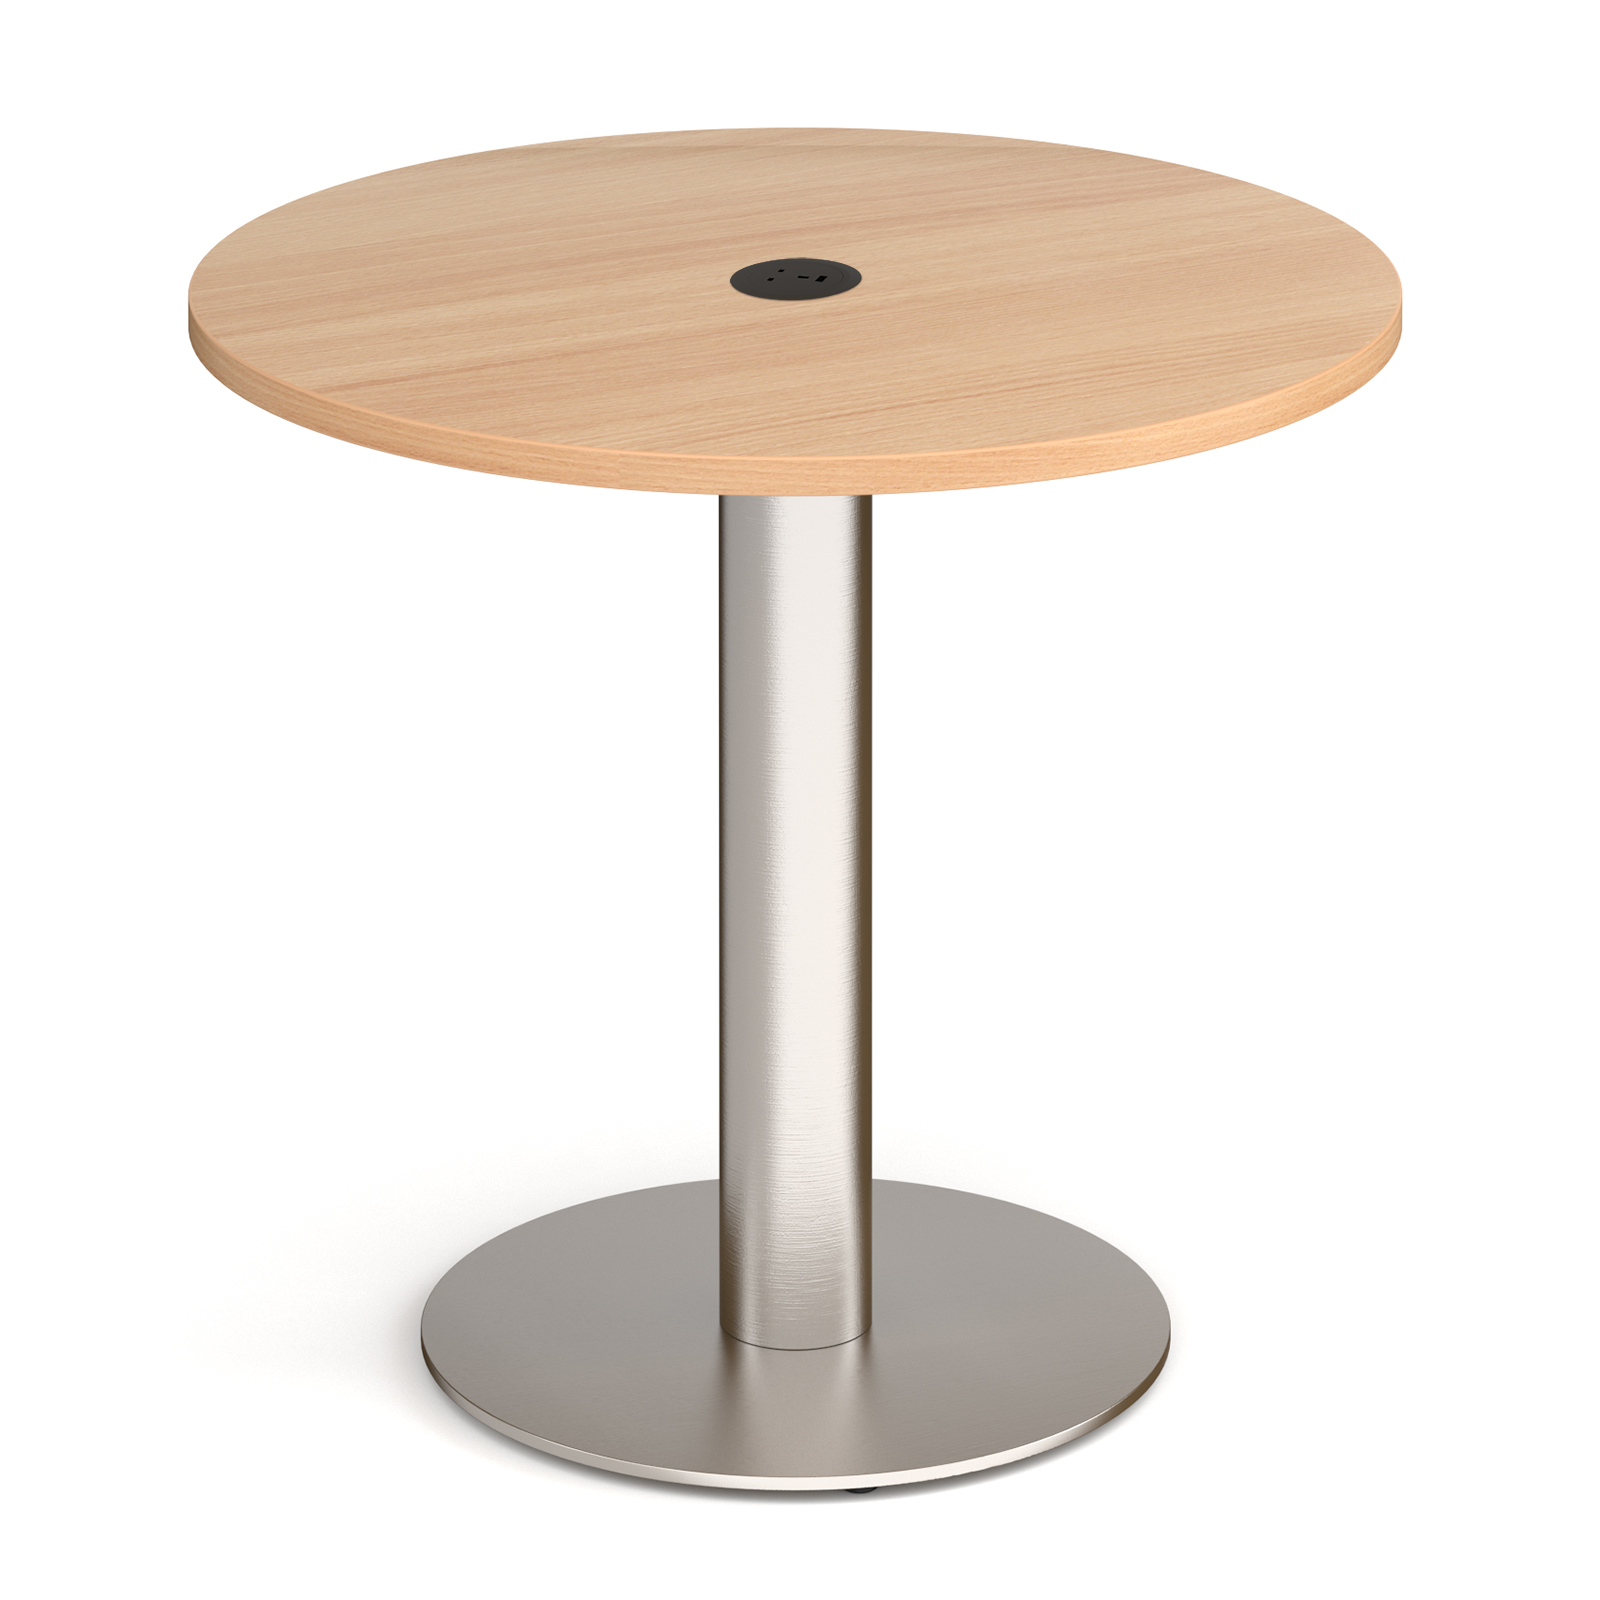 Boardroom / Meeting Monza circular dining table 800mm in beech with central circular cutout and Ion power module in black